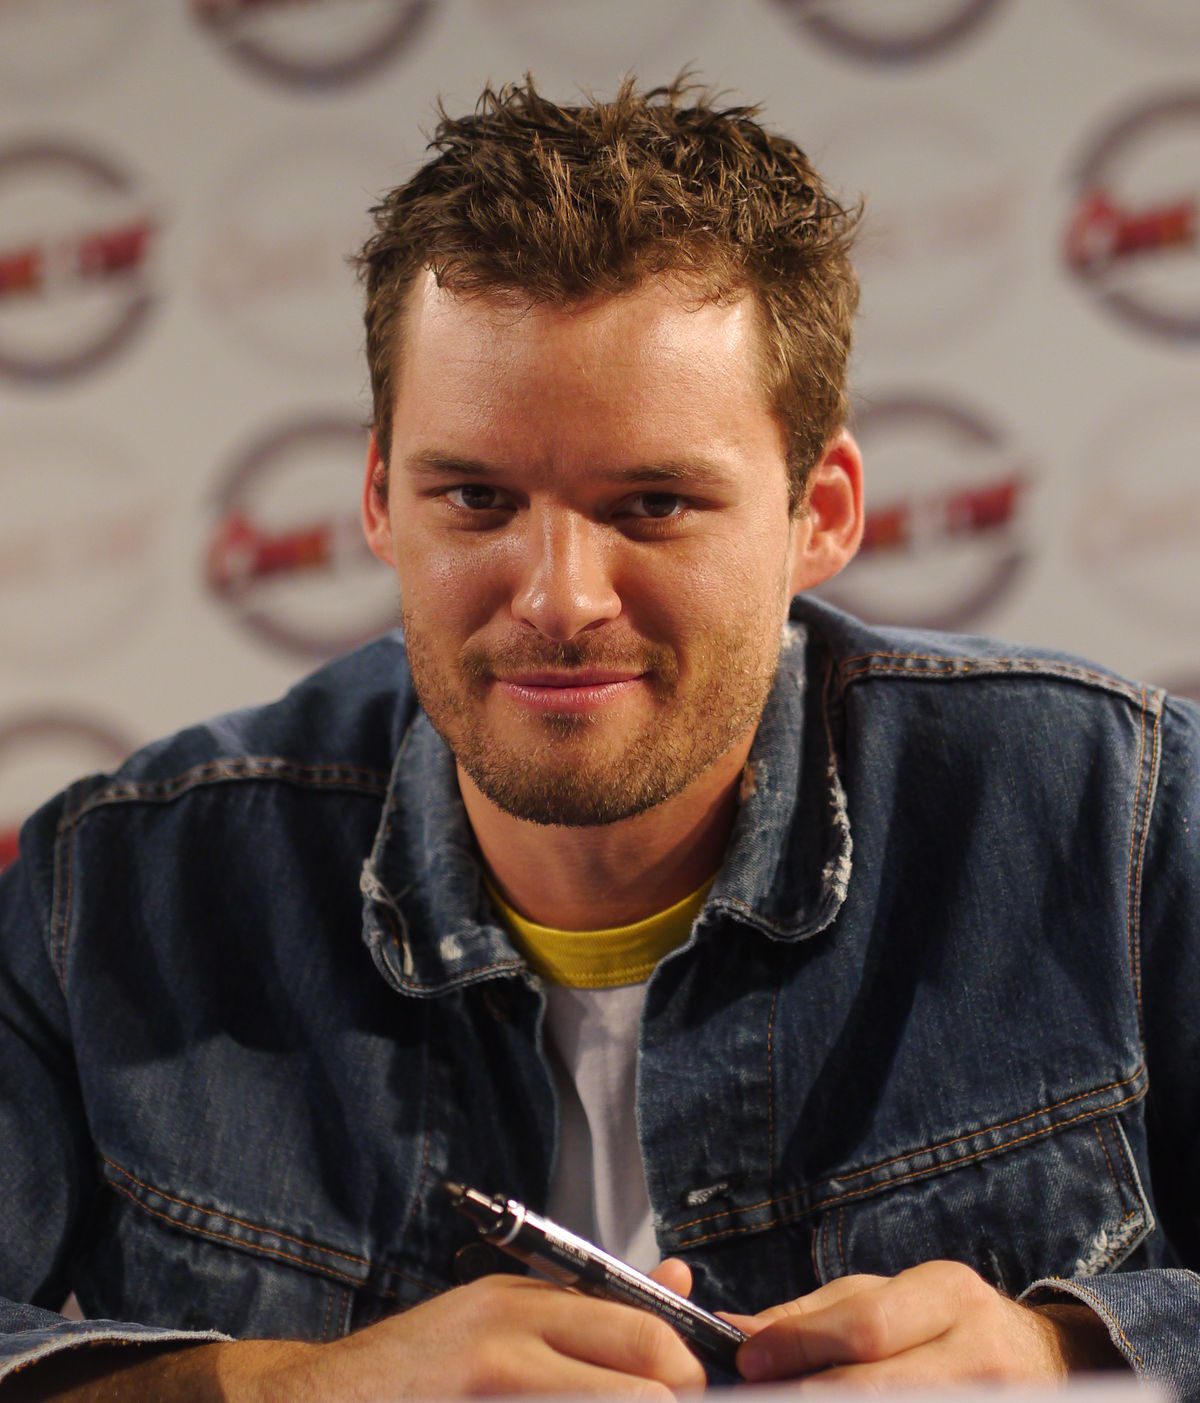 austin nichols acteur wikip dia. Black Bedroom Furniture Sets. Home Design Ideas